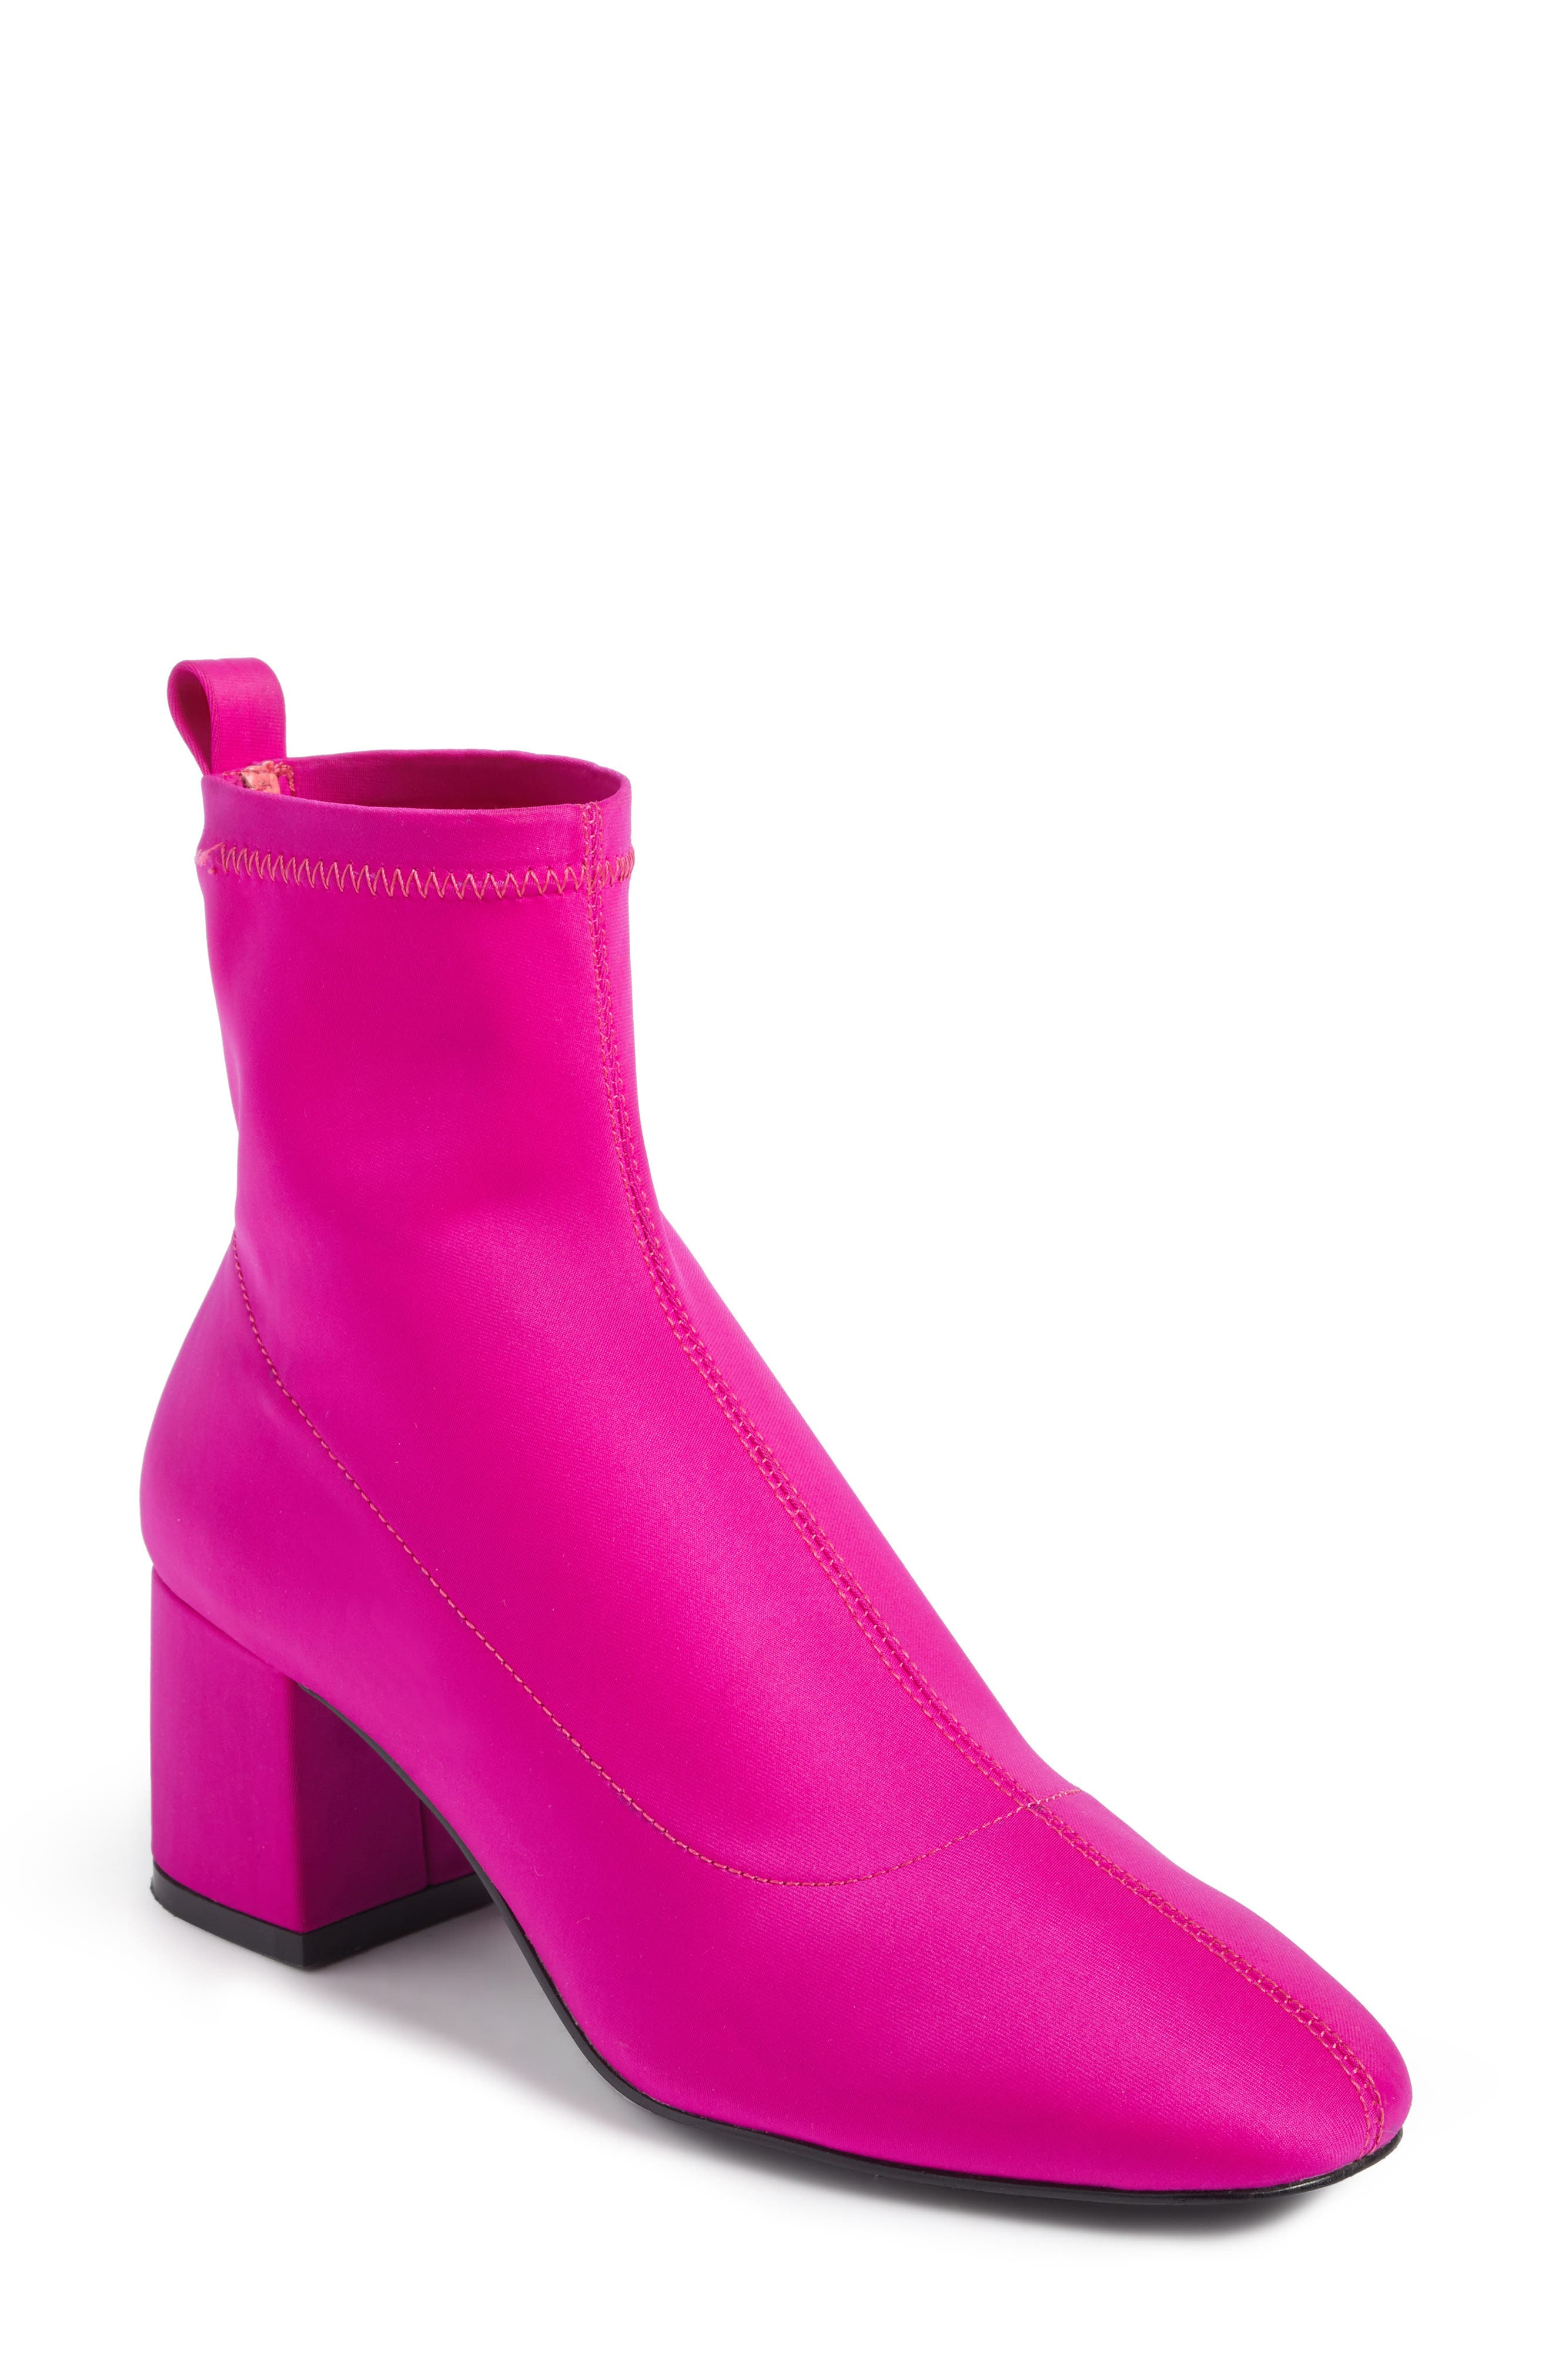 Buttercup Bootie,                             Main thumbnail 1, color,                             PINK